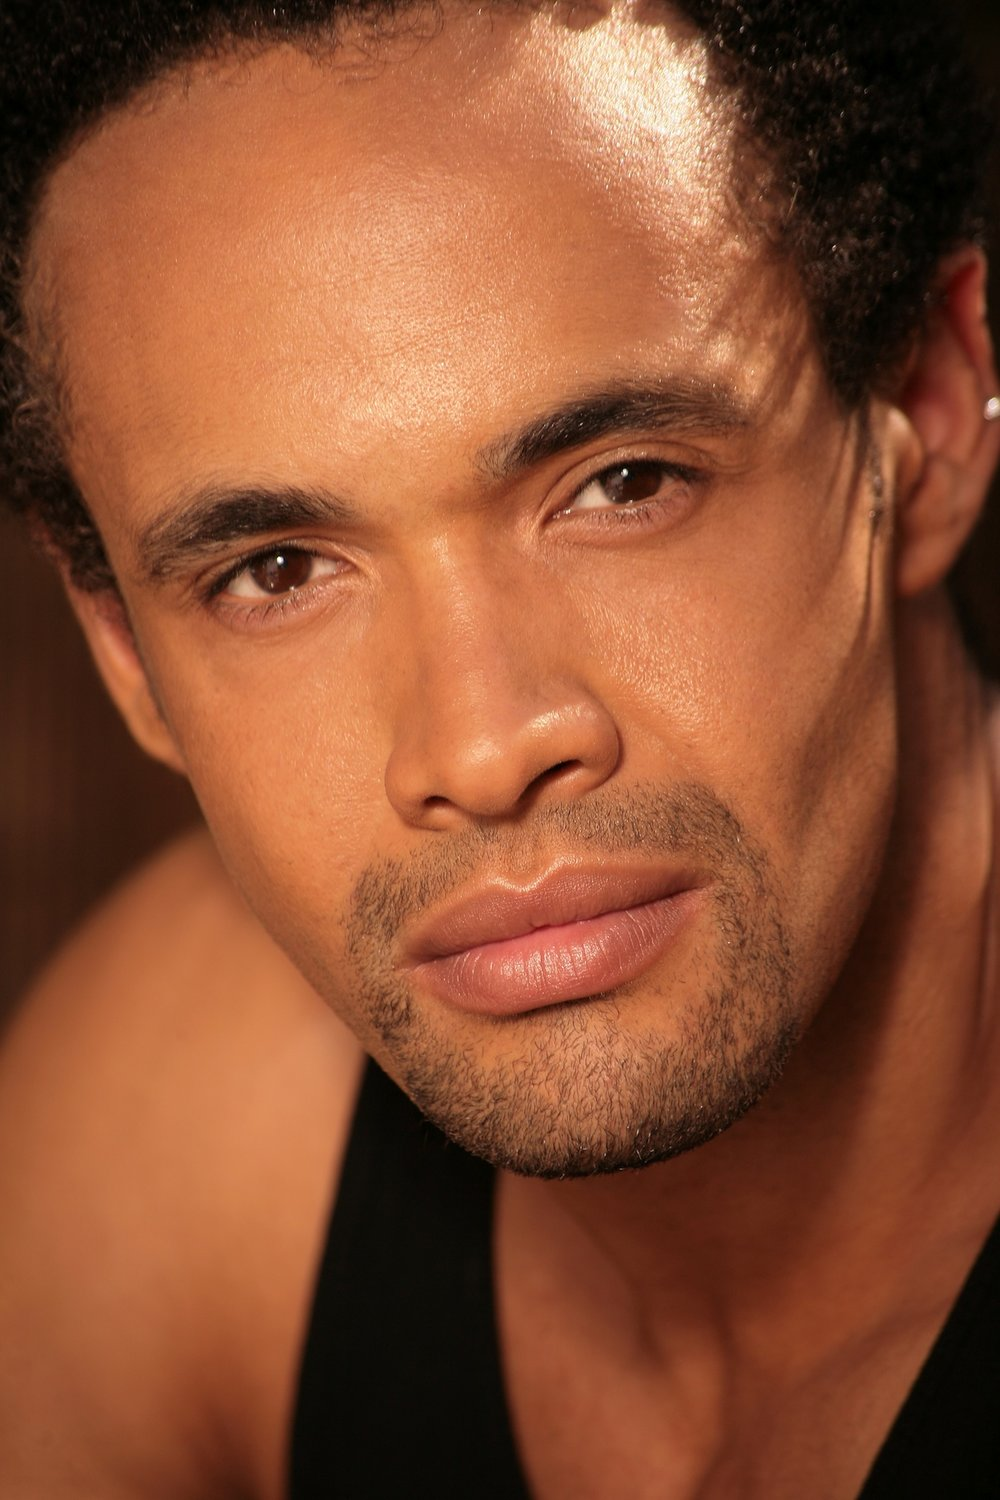 Leon Lopez New Head shot1.jpg